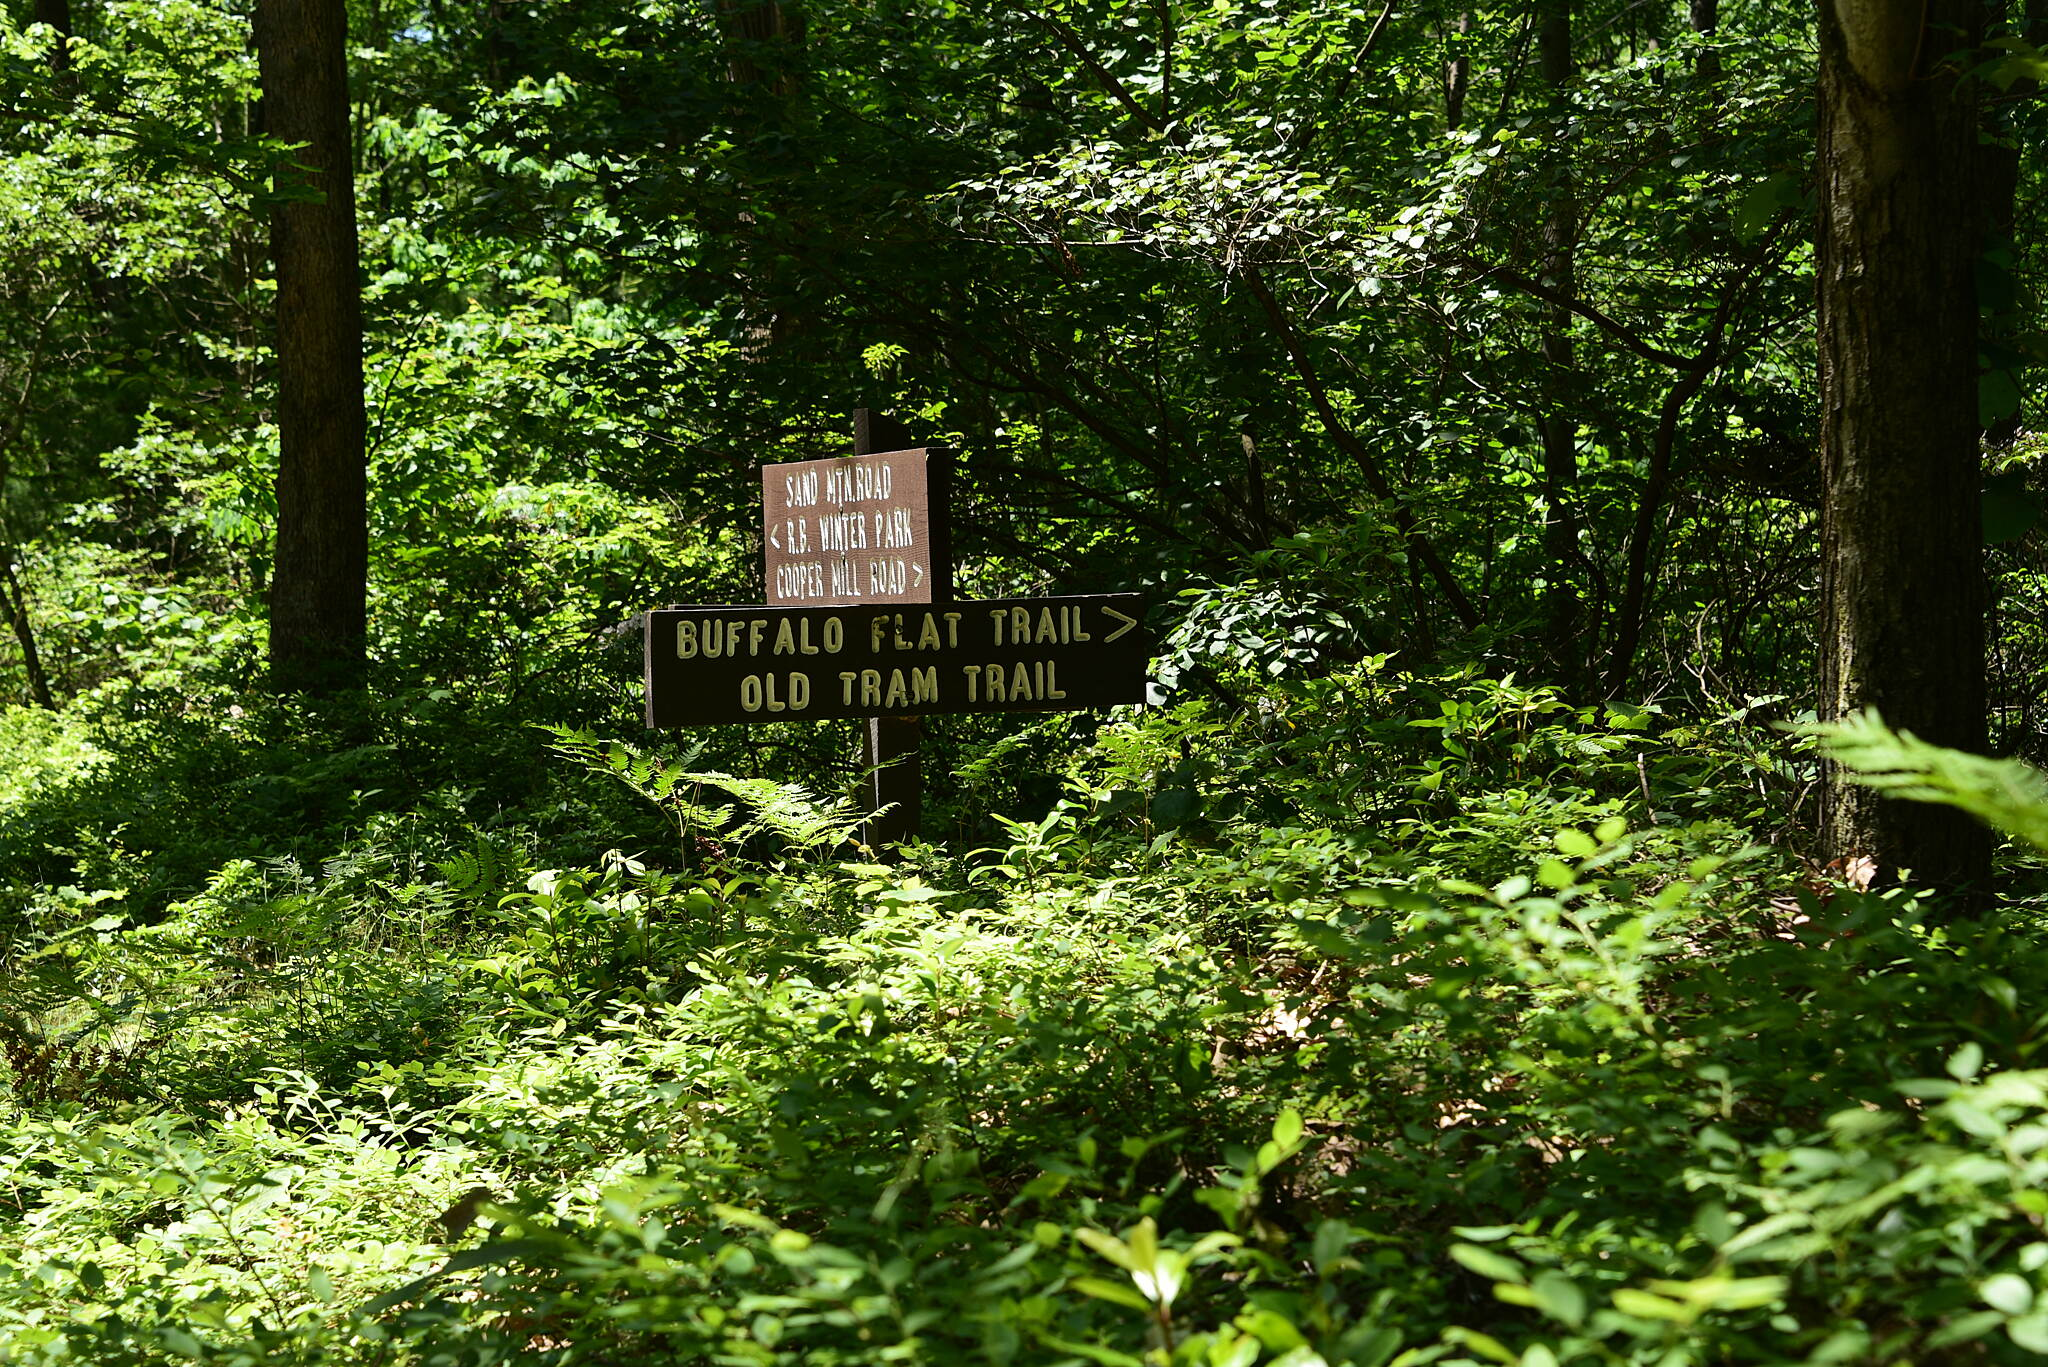 Buffalo Flat Trail Close-up of Trailhead Sign Trailhead sign & Street Sign along side Sand Mountain Rd